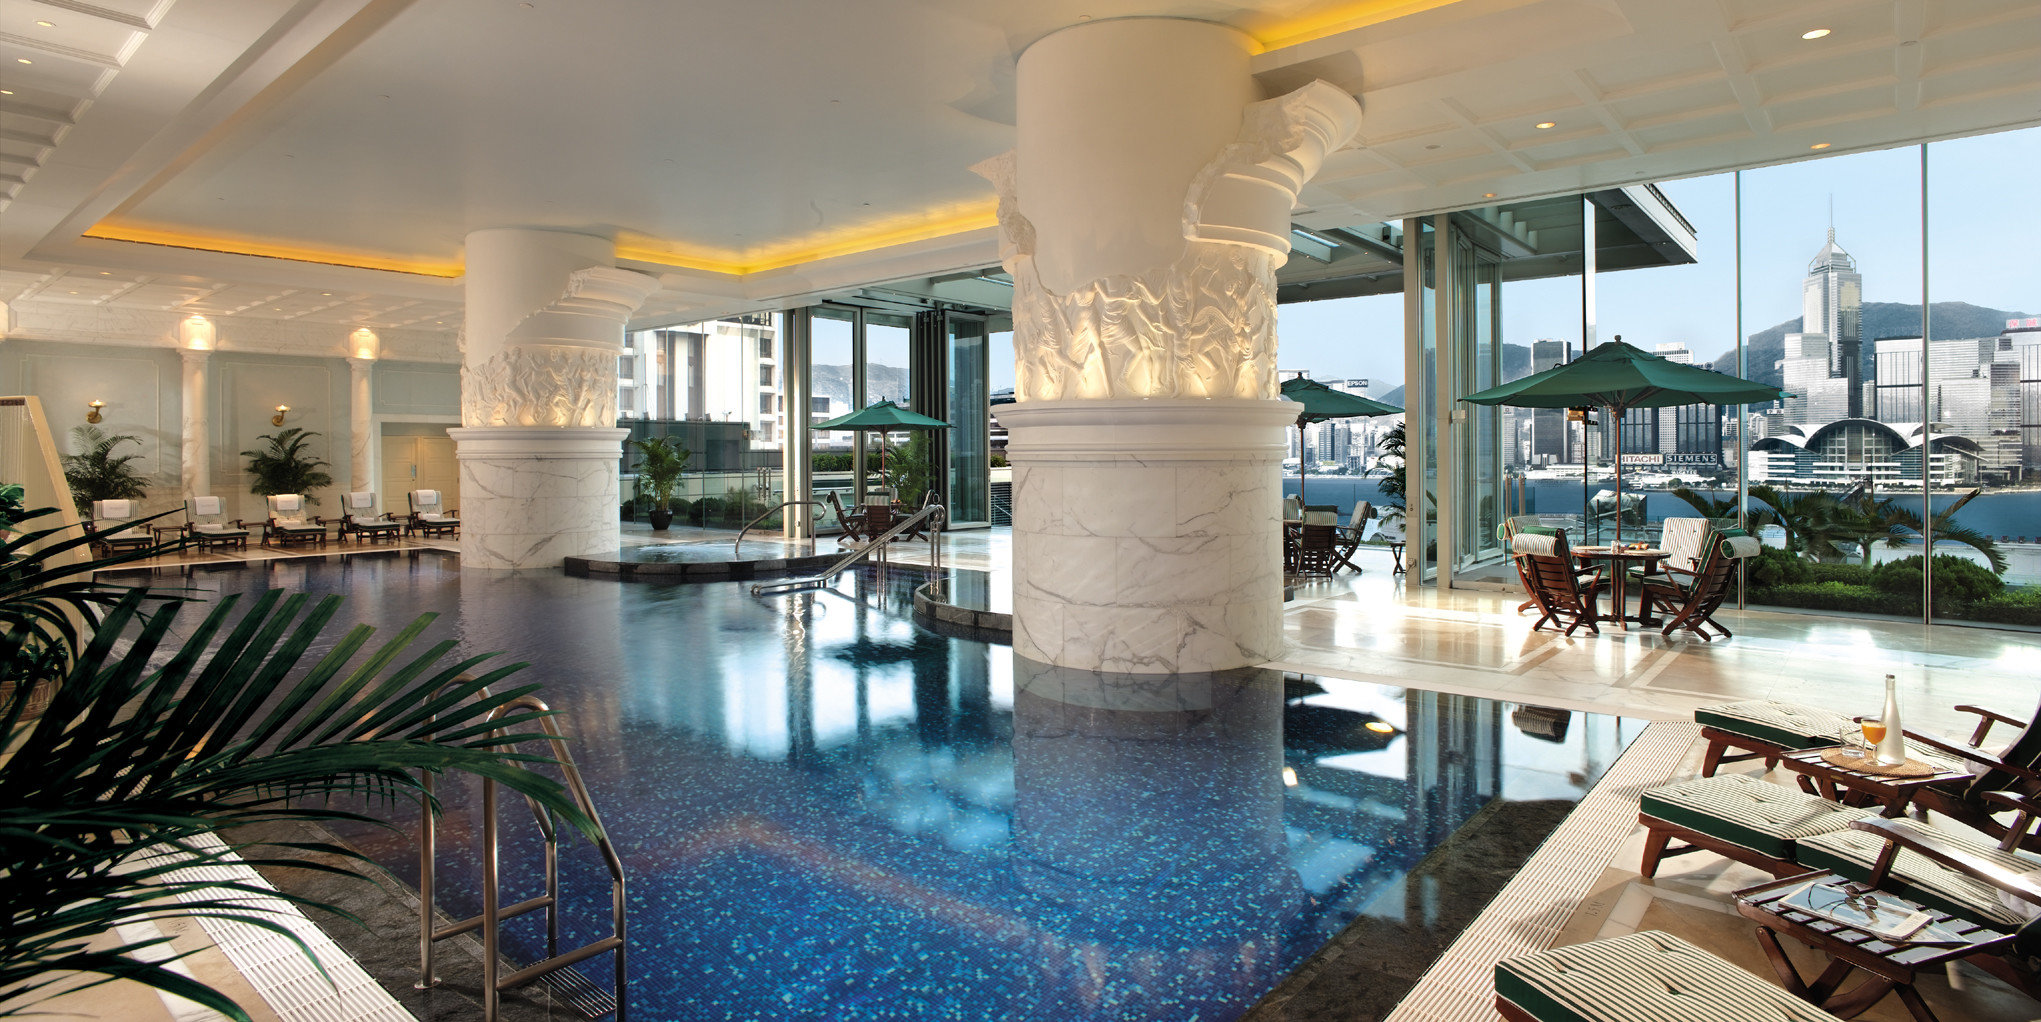 Hotels indoor floor leisure swimming pool chair property Resort ceiling estate room condominium vacation Lobby interior design restaurant real estate palace Dining mansion furniture Villa several